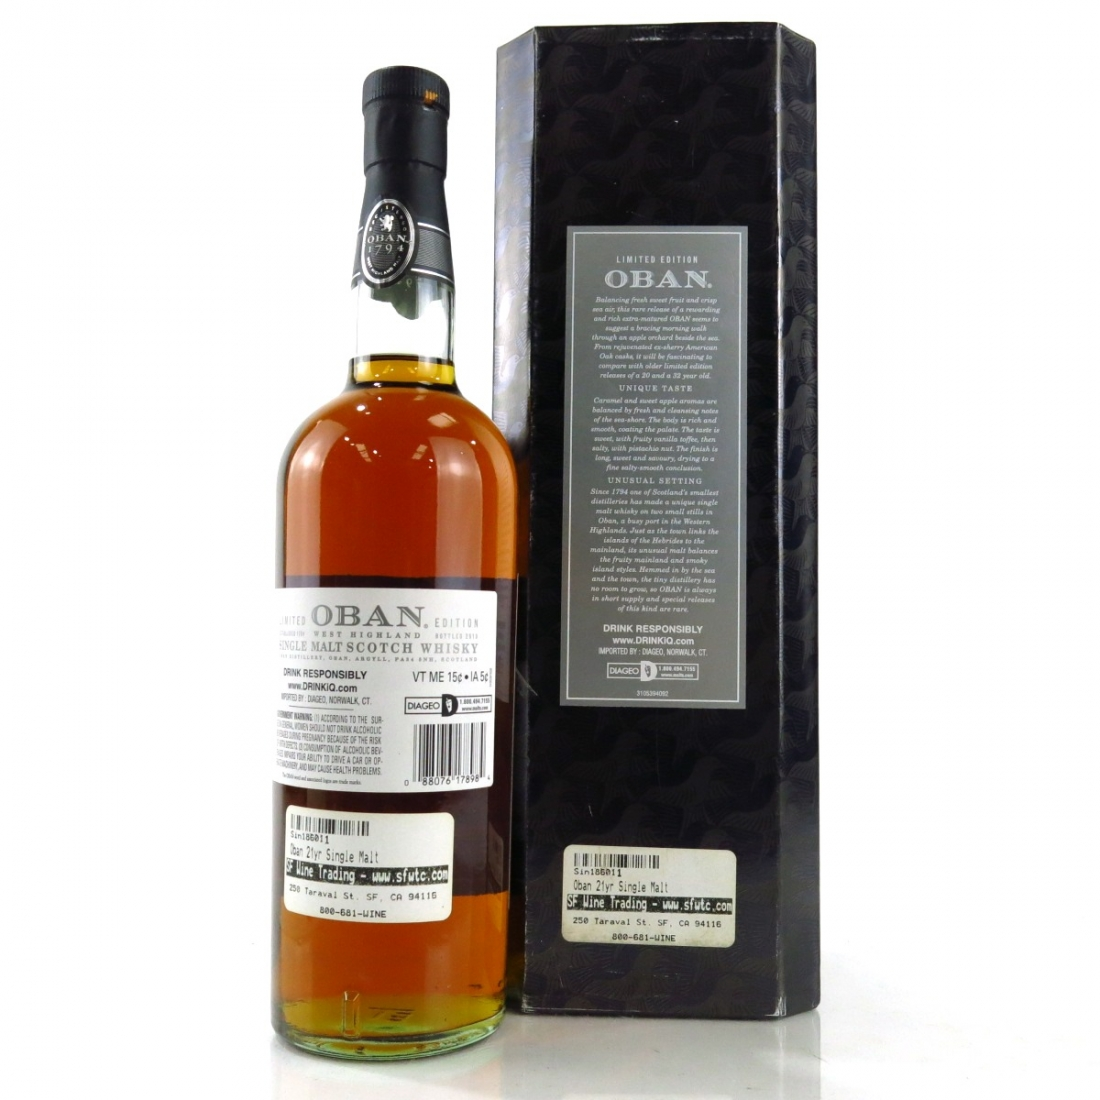 Oban 21 Year Old Cask Strength 2013 75cl / US Import